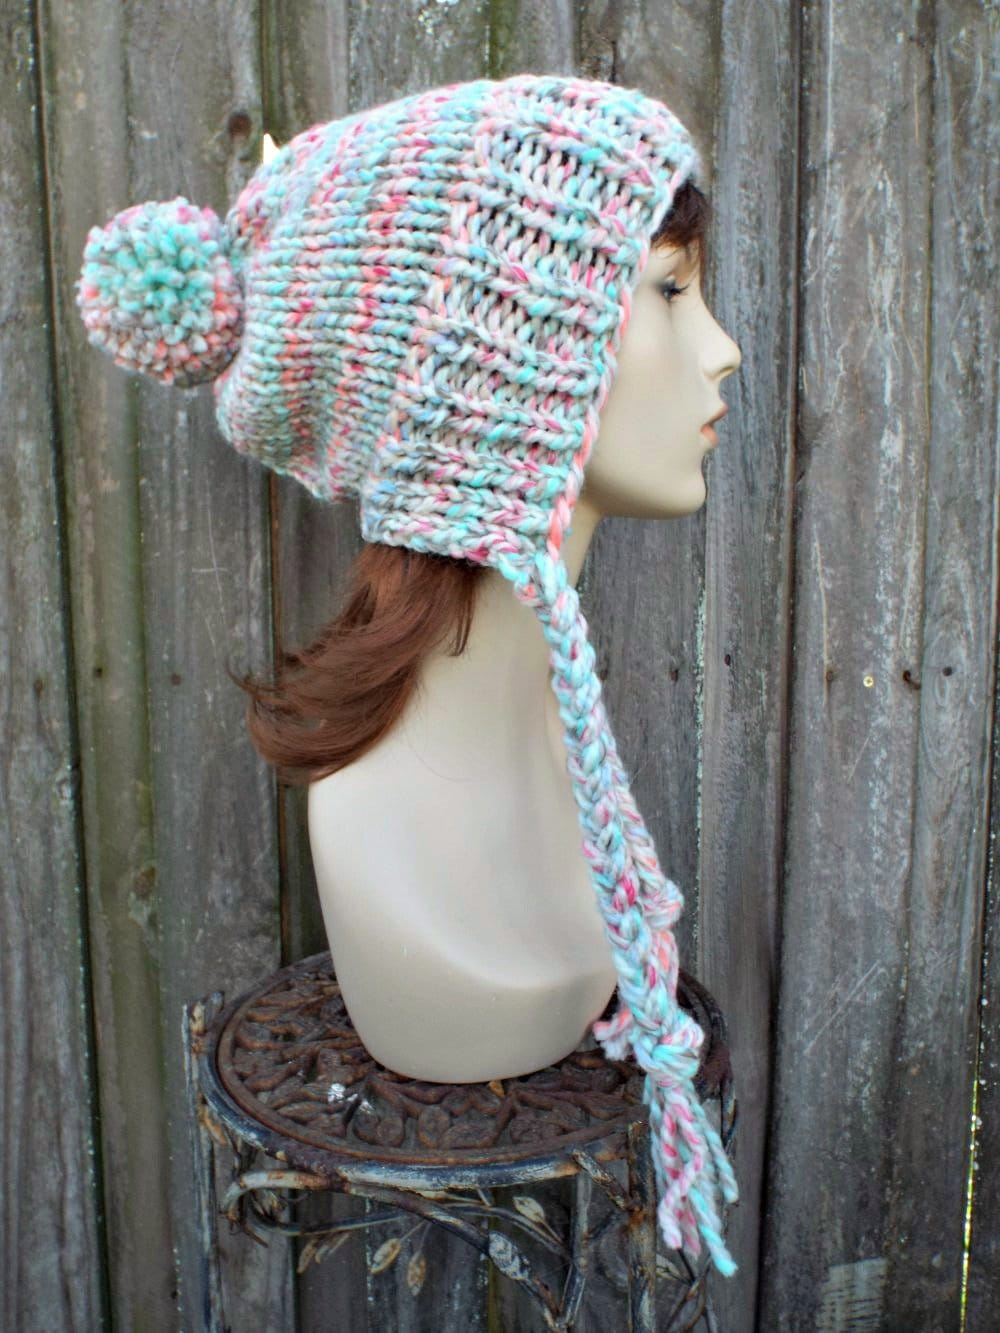 d3c82f5ad65 Chunky Knit Hat Womens Pastel Rainbow Pom Pom Hat - Slouchy Ear Flap Beanie  With Braided Ties Warm Winter Hat - READY TO SHIP